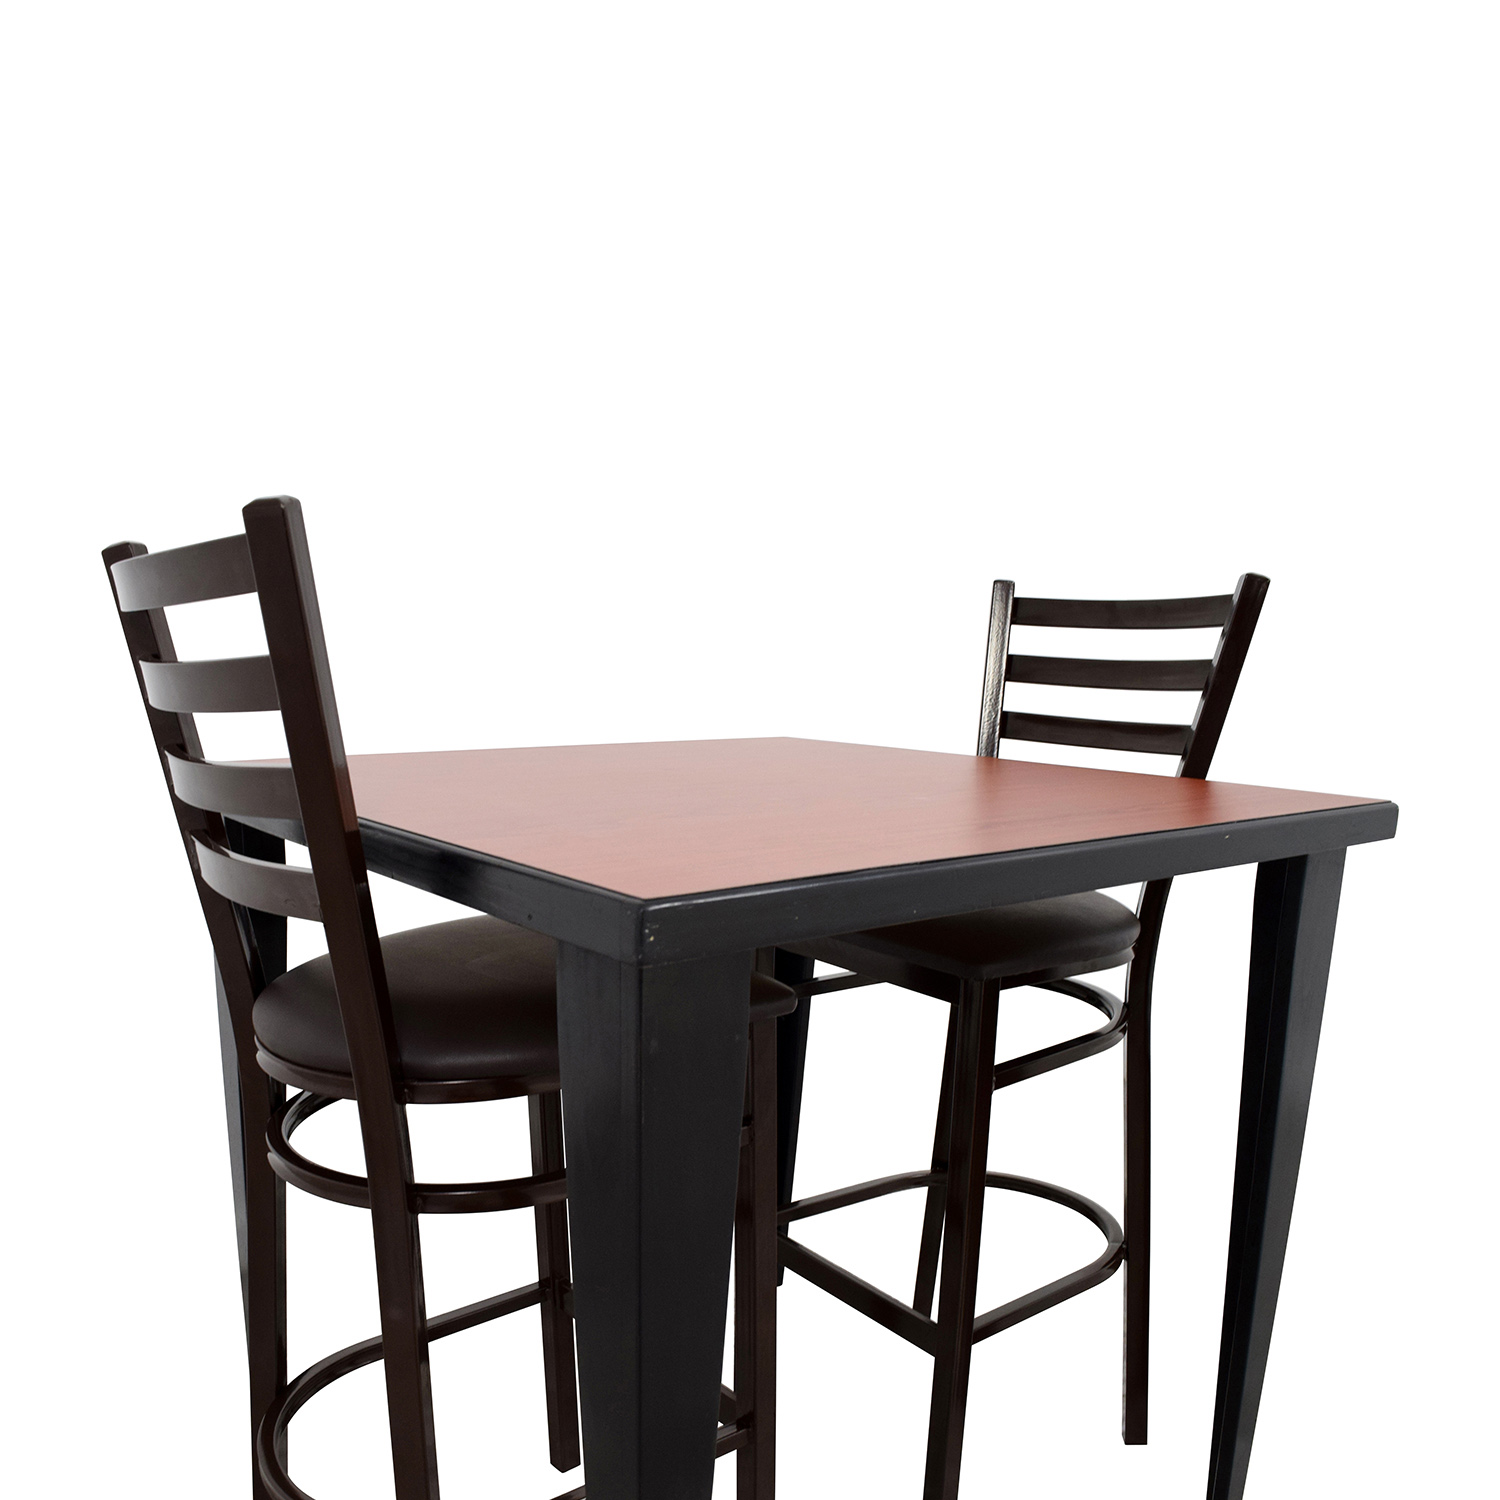 Where To Buy Dining Table: Counter Height Kitchen Table And Two Chairs / Tables